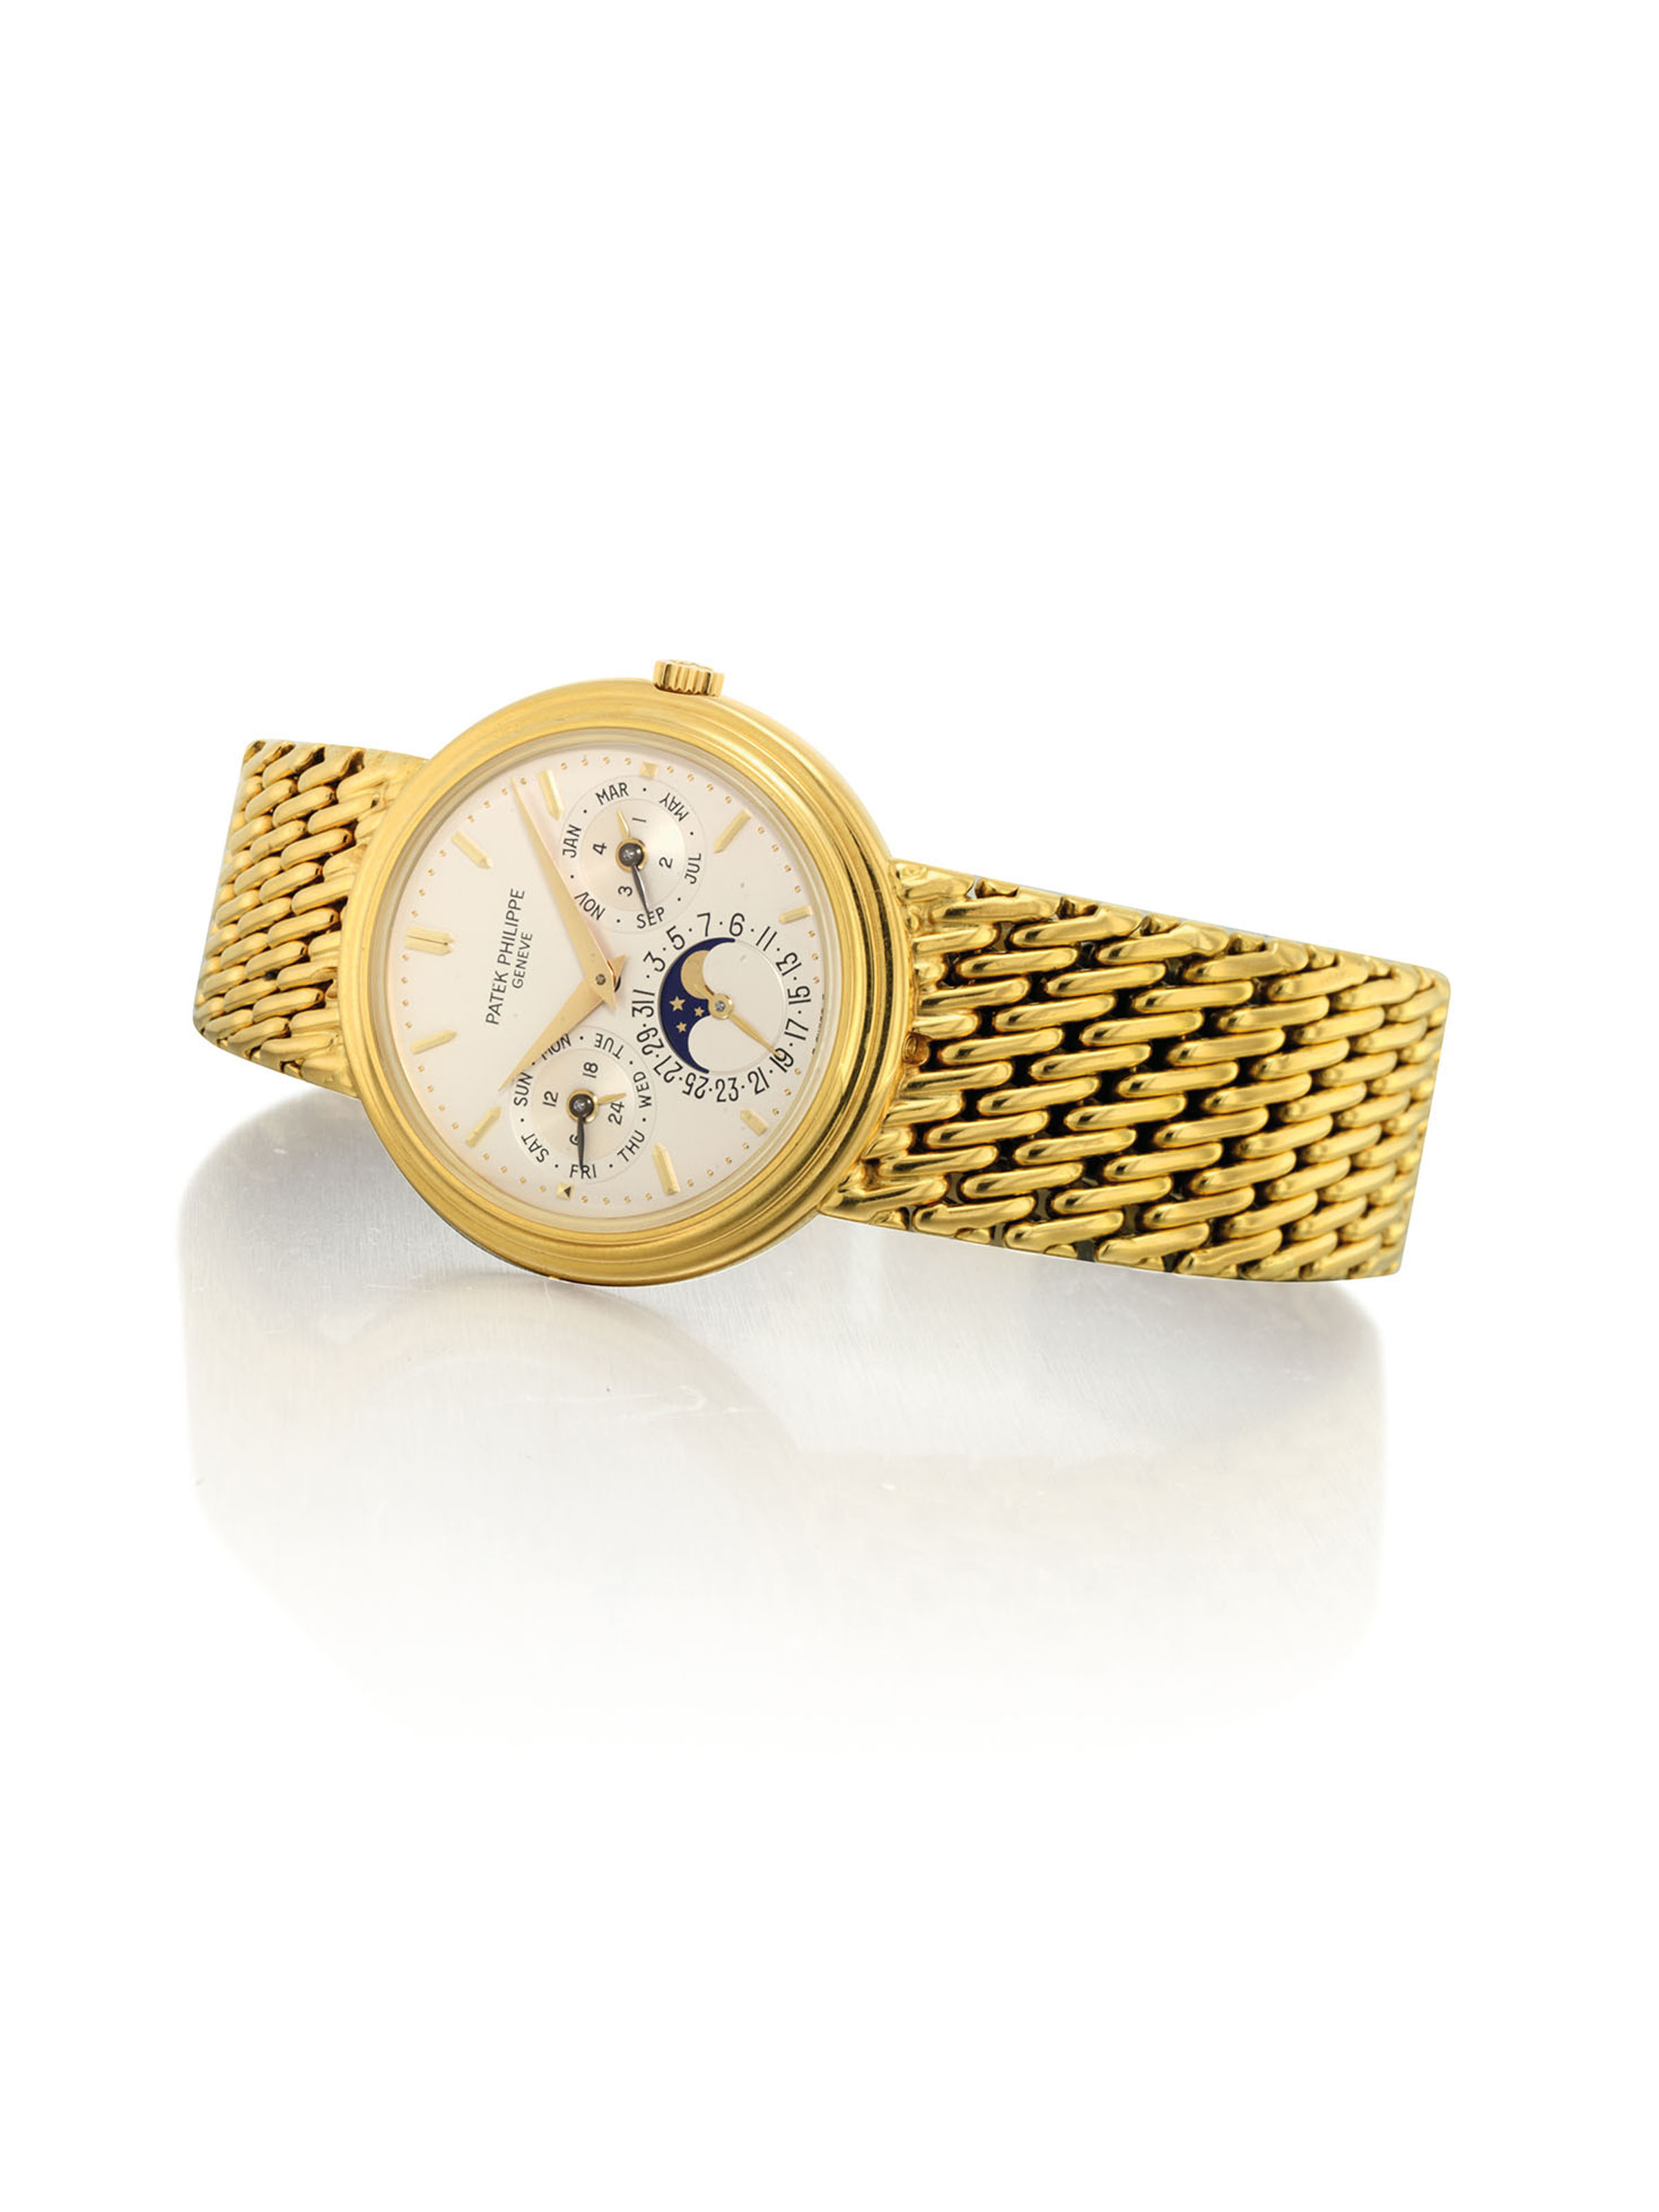 PATEK PHILIPPE. A FINE 18K GOLD AUTOMATIC PERPETUAL CALENDAR BRACELET WATCH WITH MOON PHASES, 24 HOUR AND LEAP YEAR INDICATION